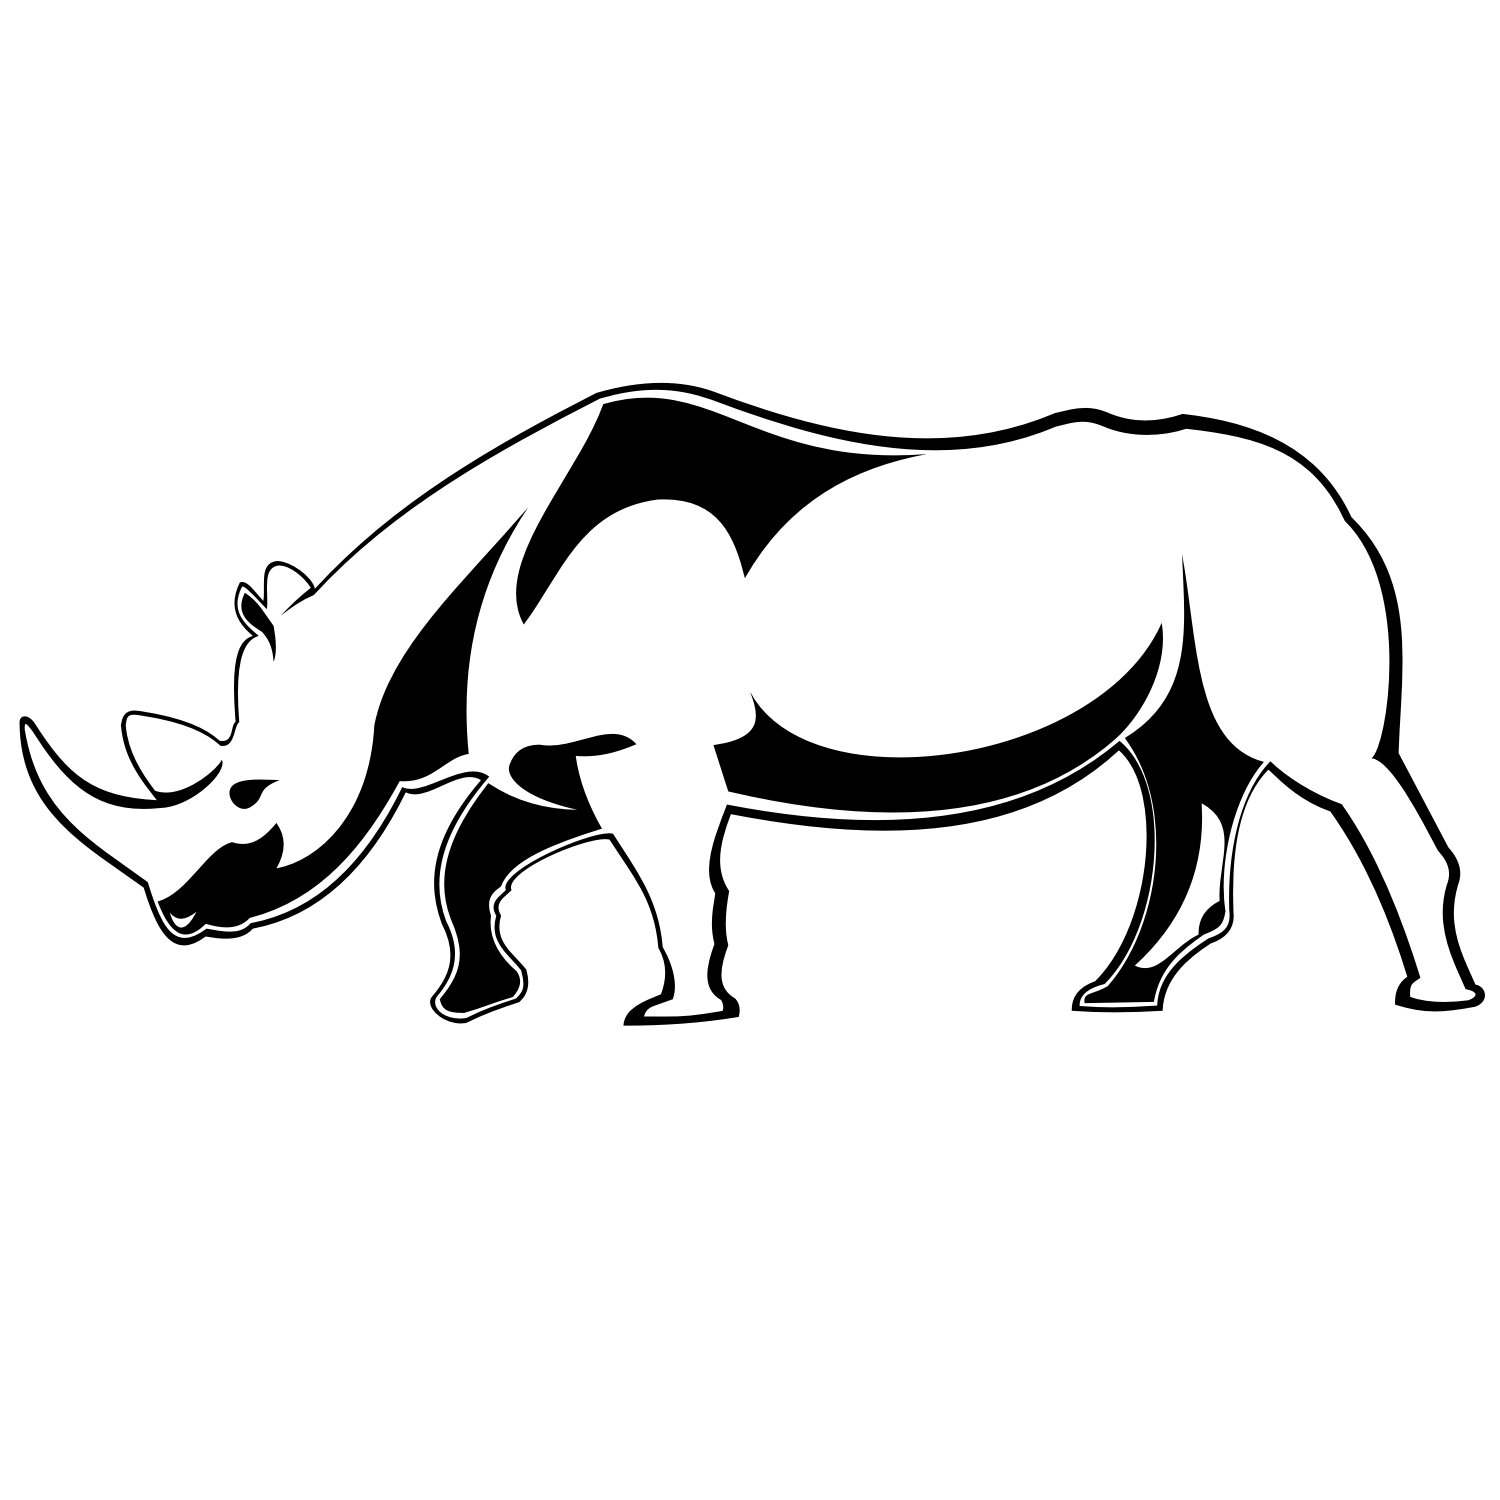 Rhino vector graphics